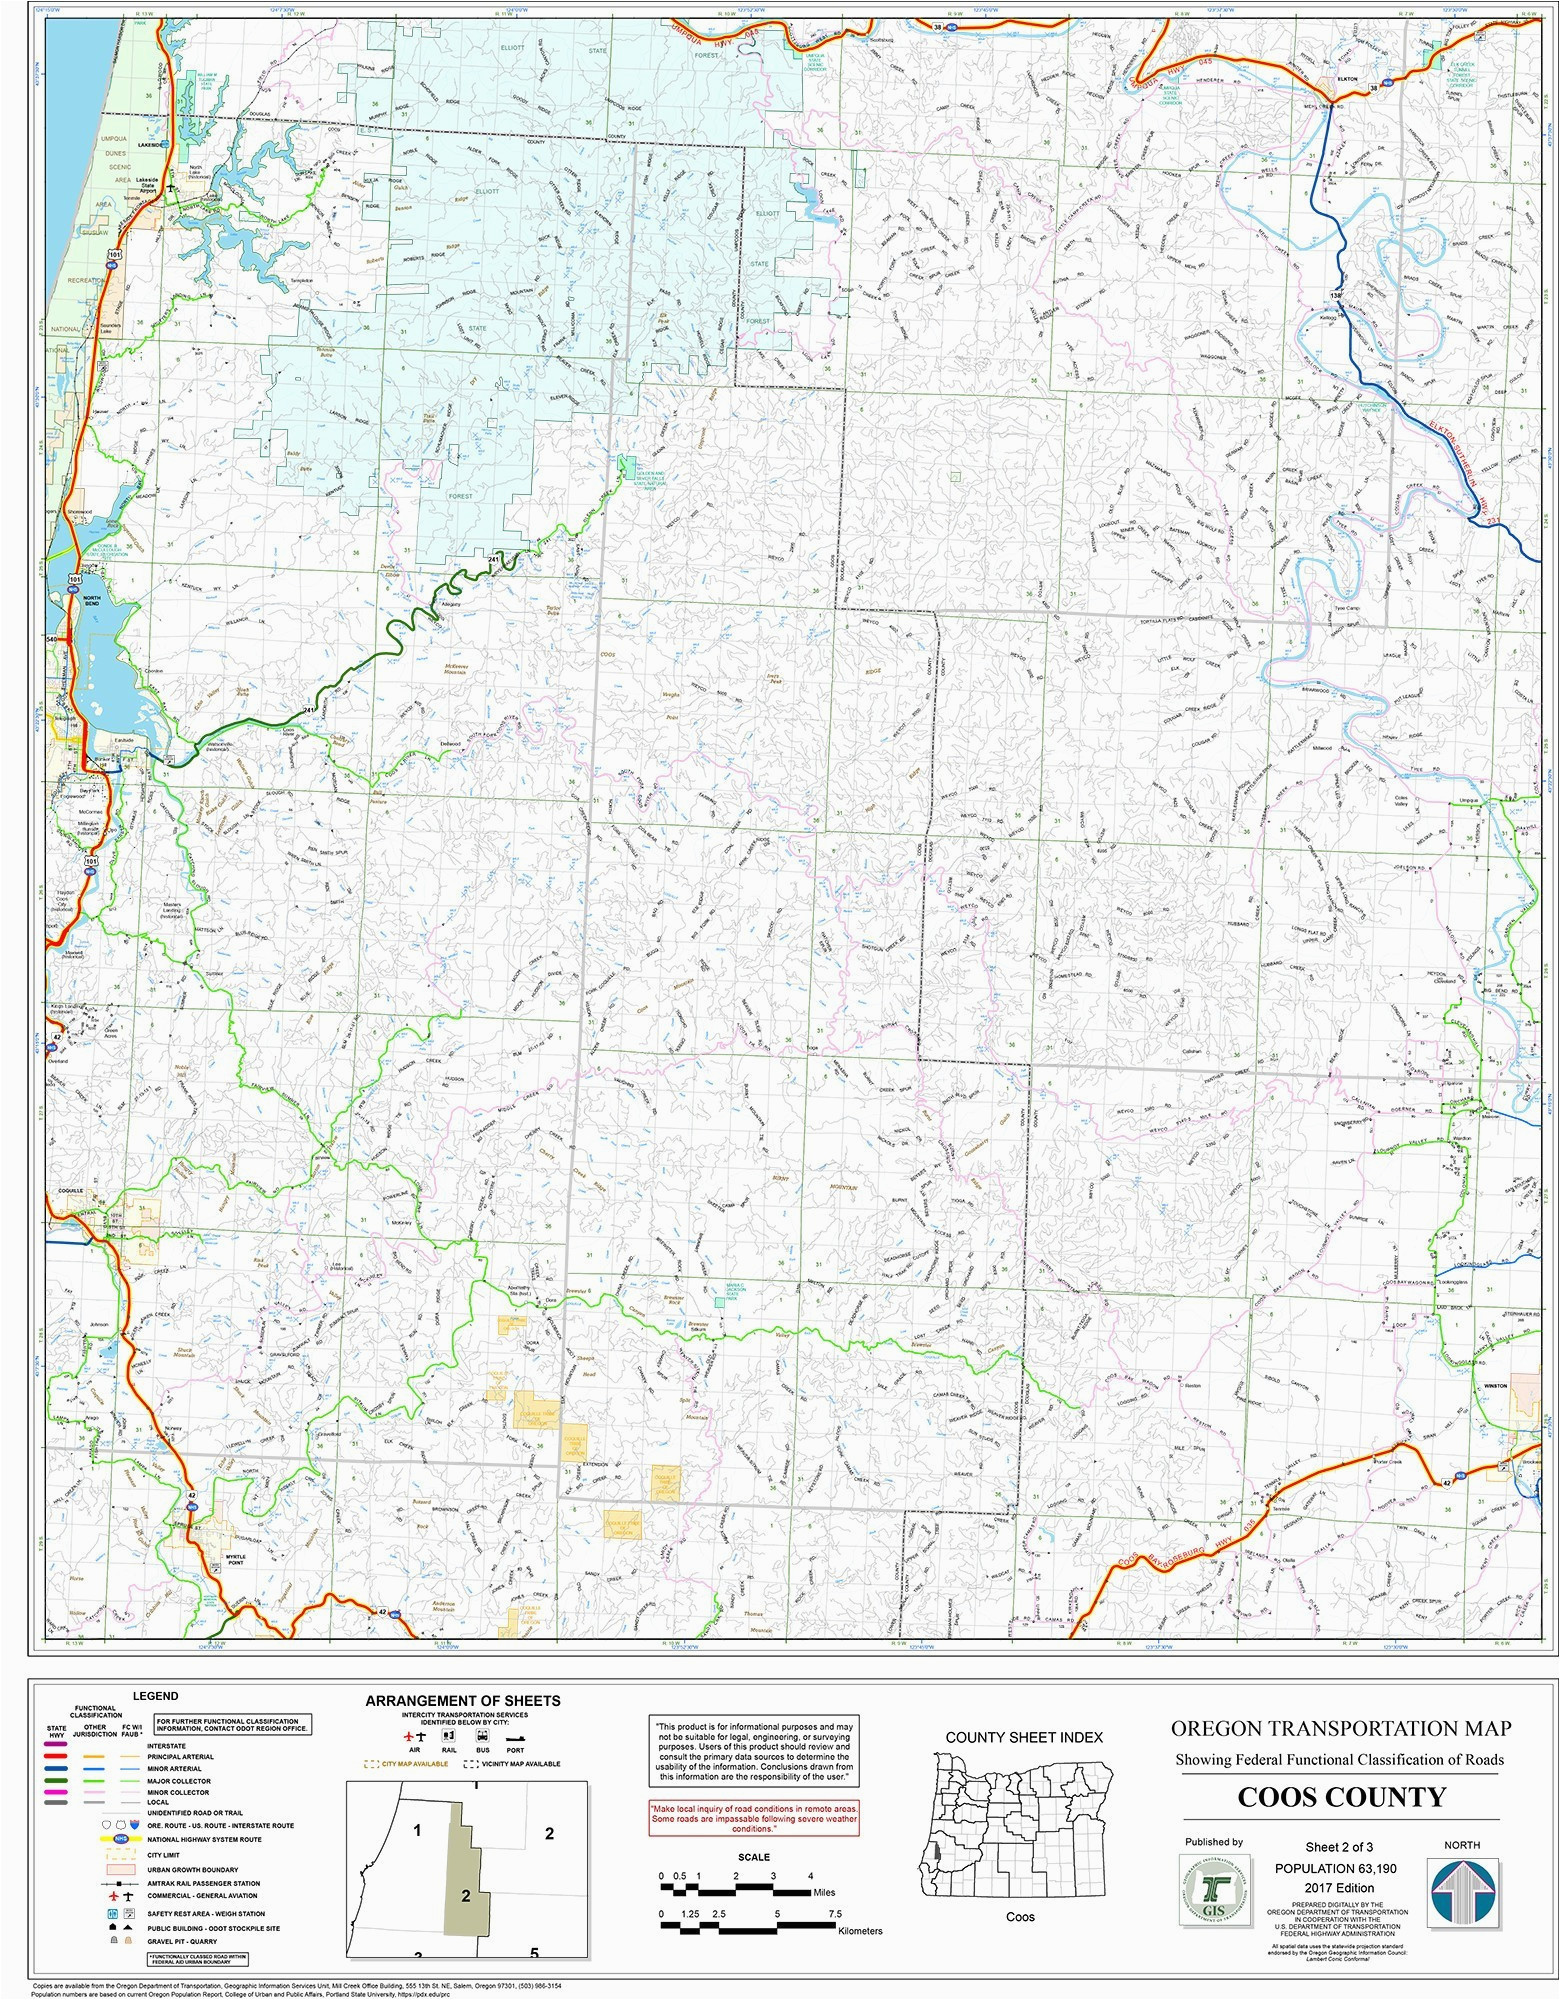 Map If Texas Map if Texas Interactive Map Of Texas Luxury Texas Detailed